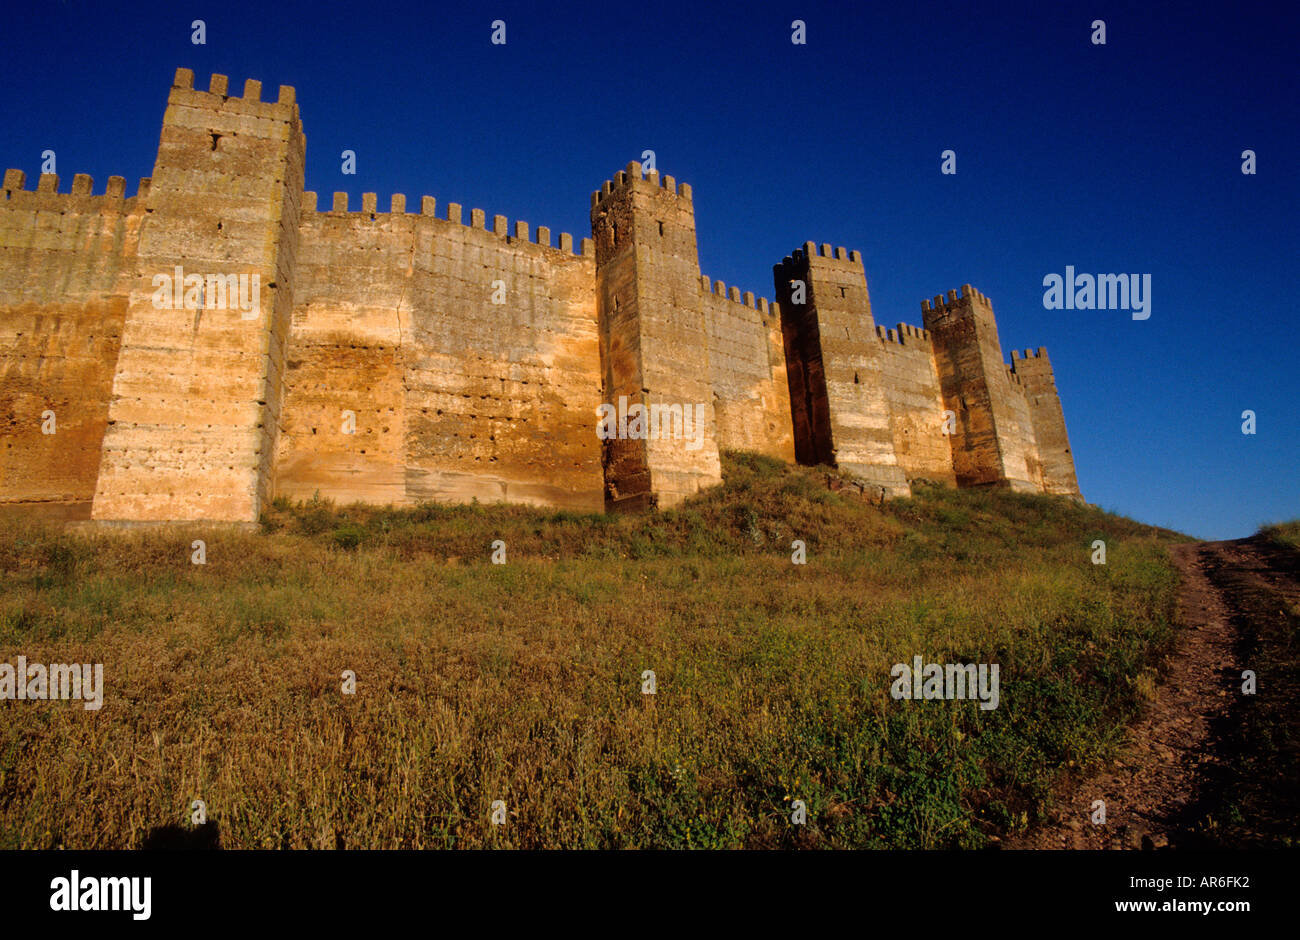 Baños De La Encina Caliph Stock Photos And Caliph Stock Images Alamy